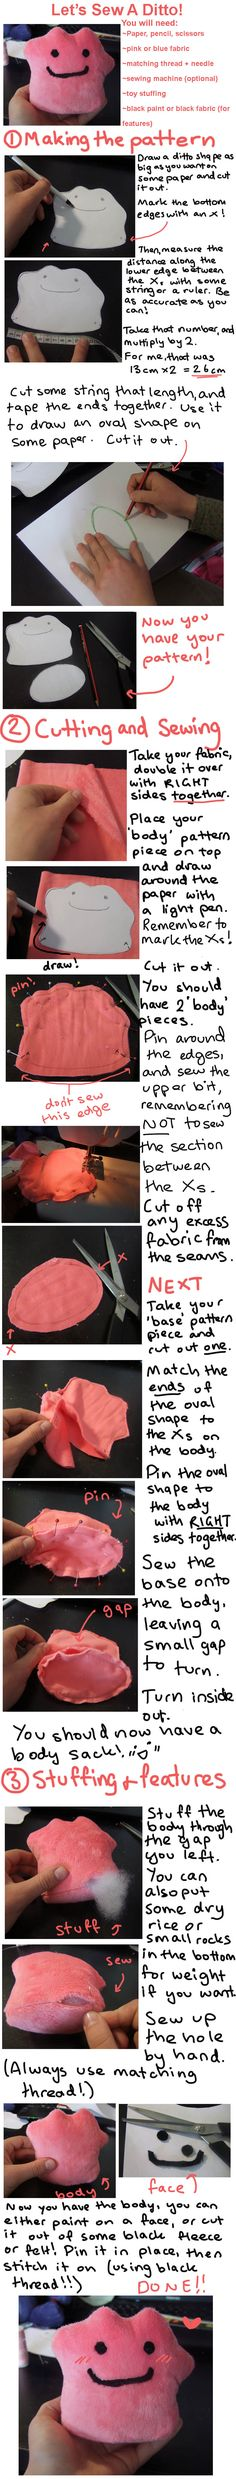 Pokemon Plush Tutorial | ... Sew A Ditto! beginner's plushie tutorial by…